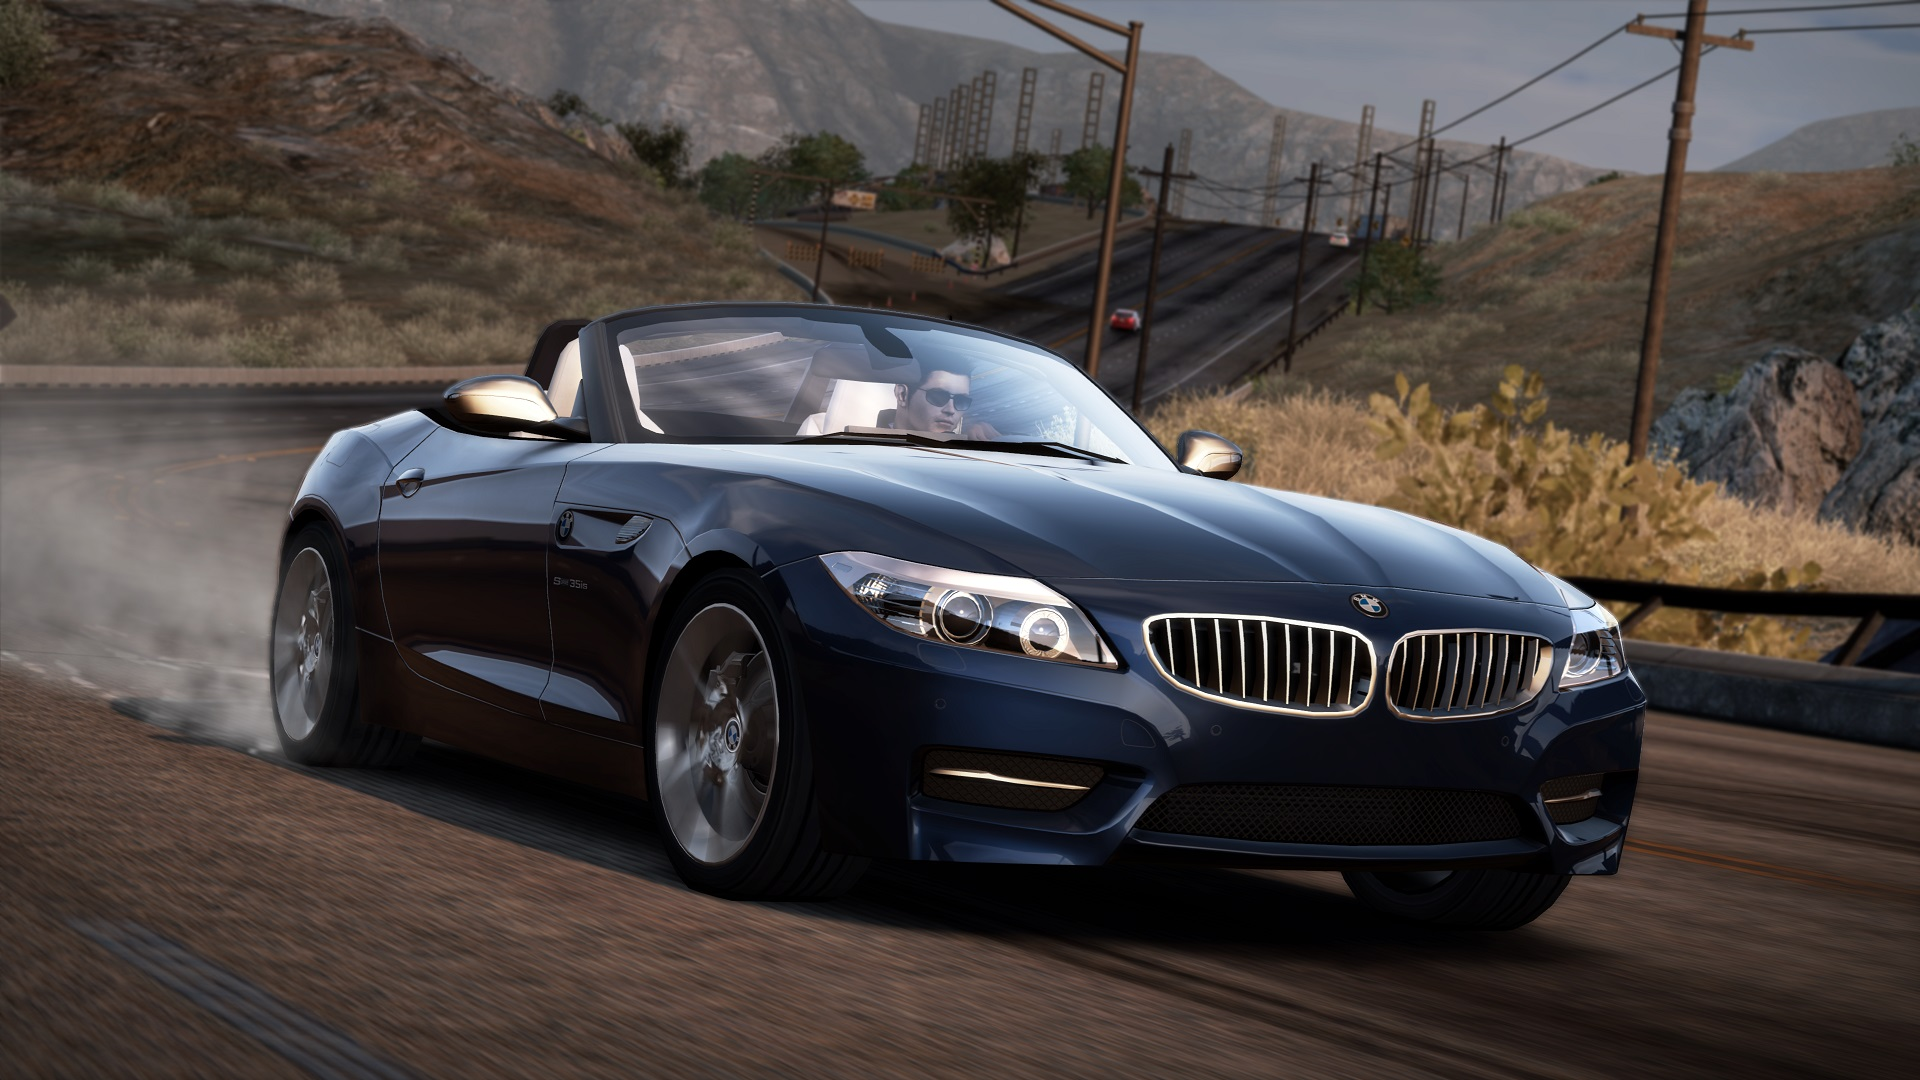 BMW Z4 sDrive35is (E89) | Need for Speed Wiki | FANDOM powered by ...